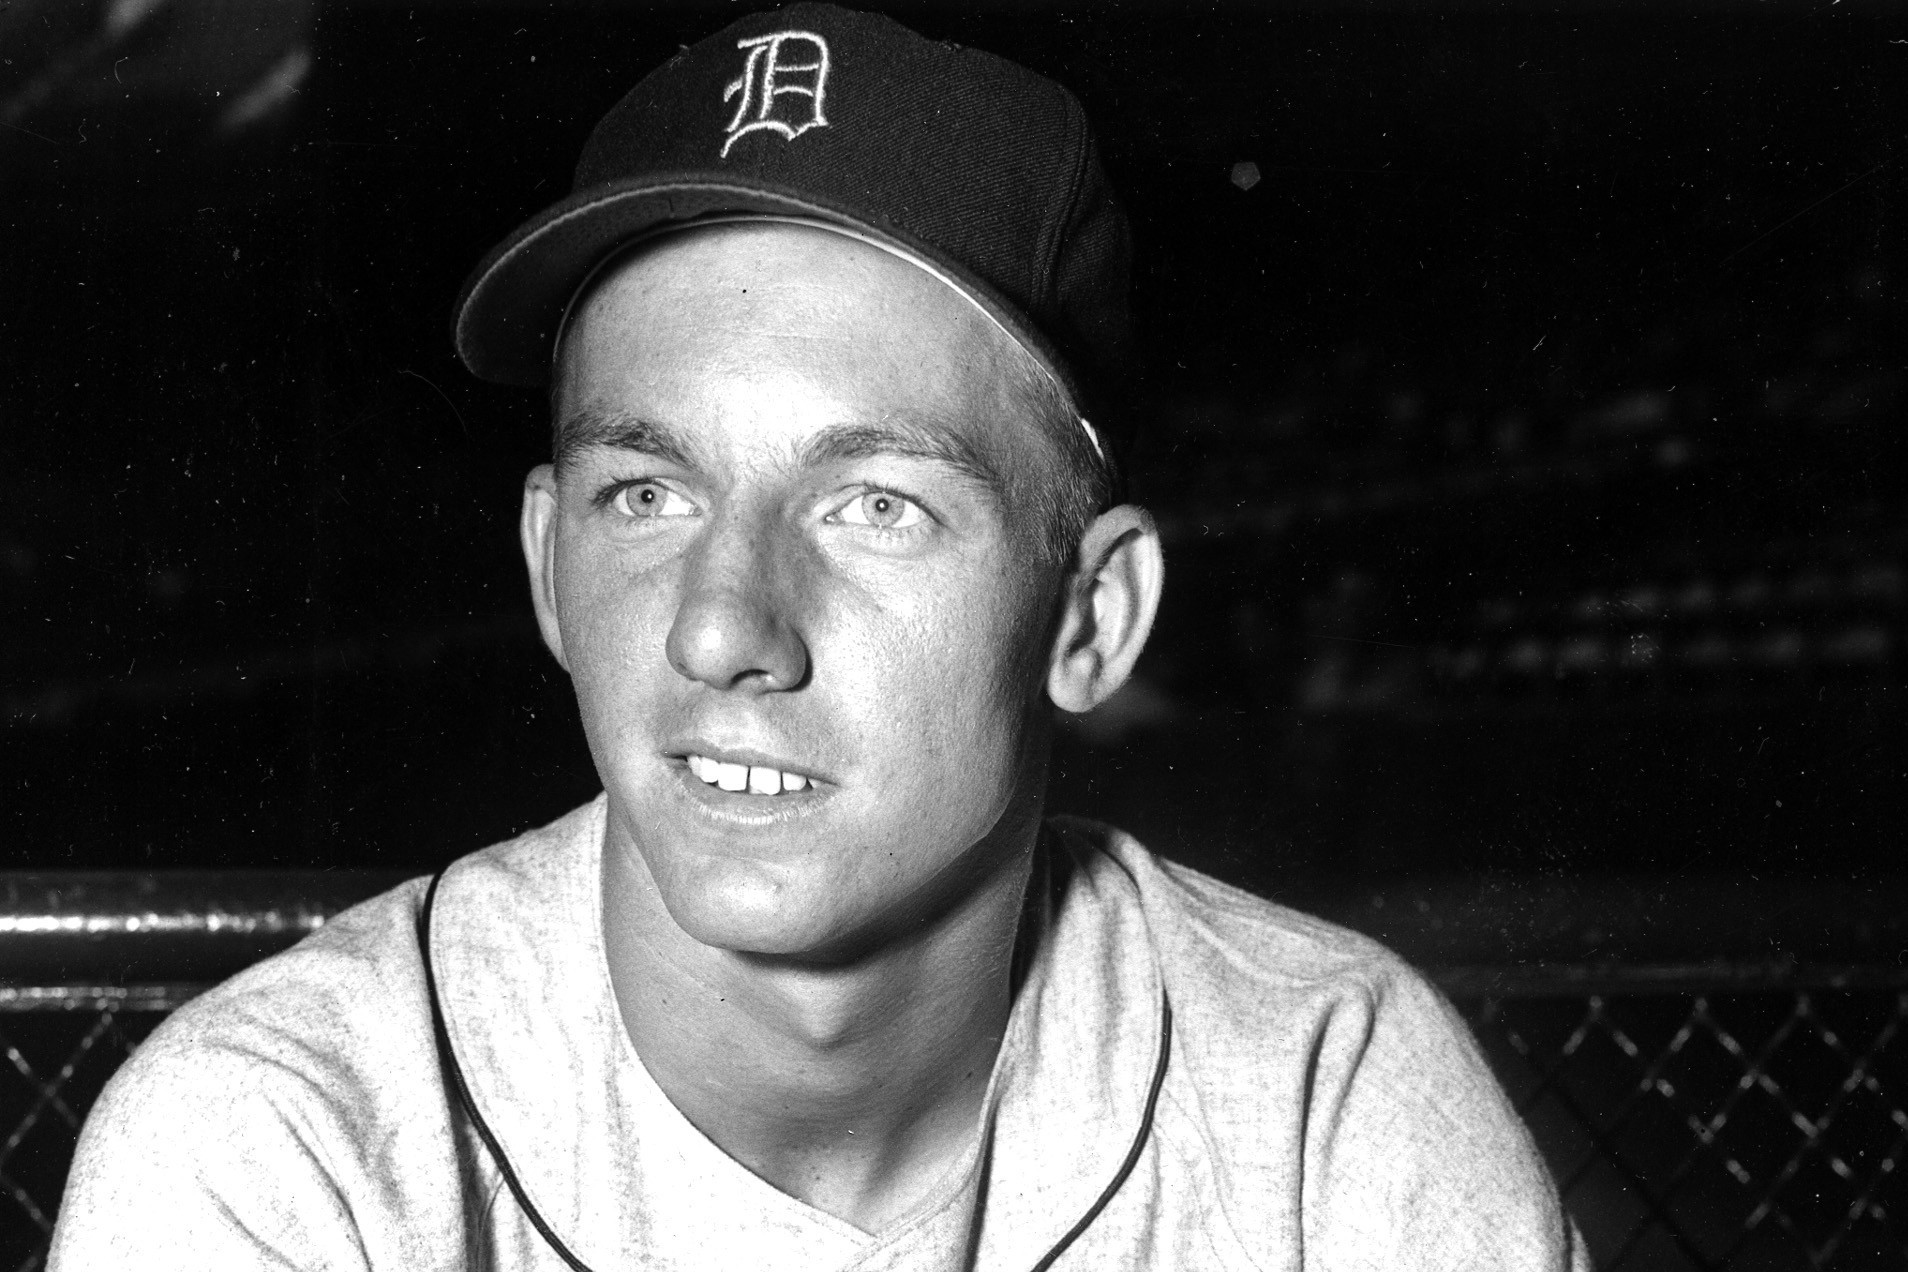 Al Kaline, beloved Detroit Tigers star, dies at 85